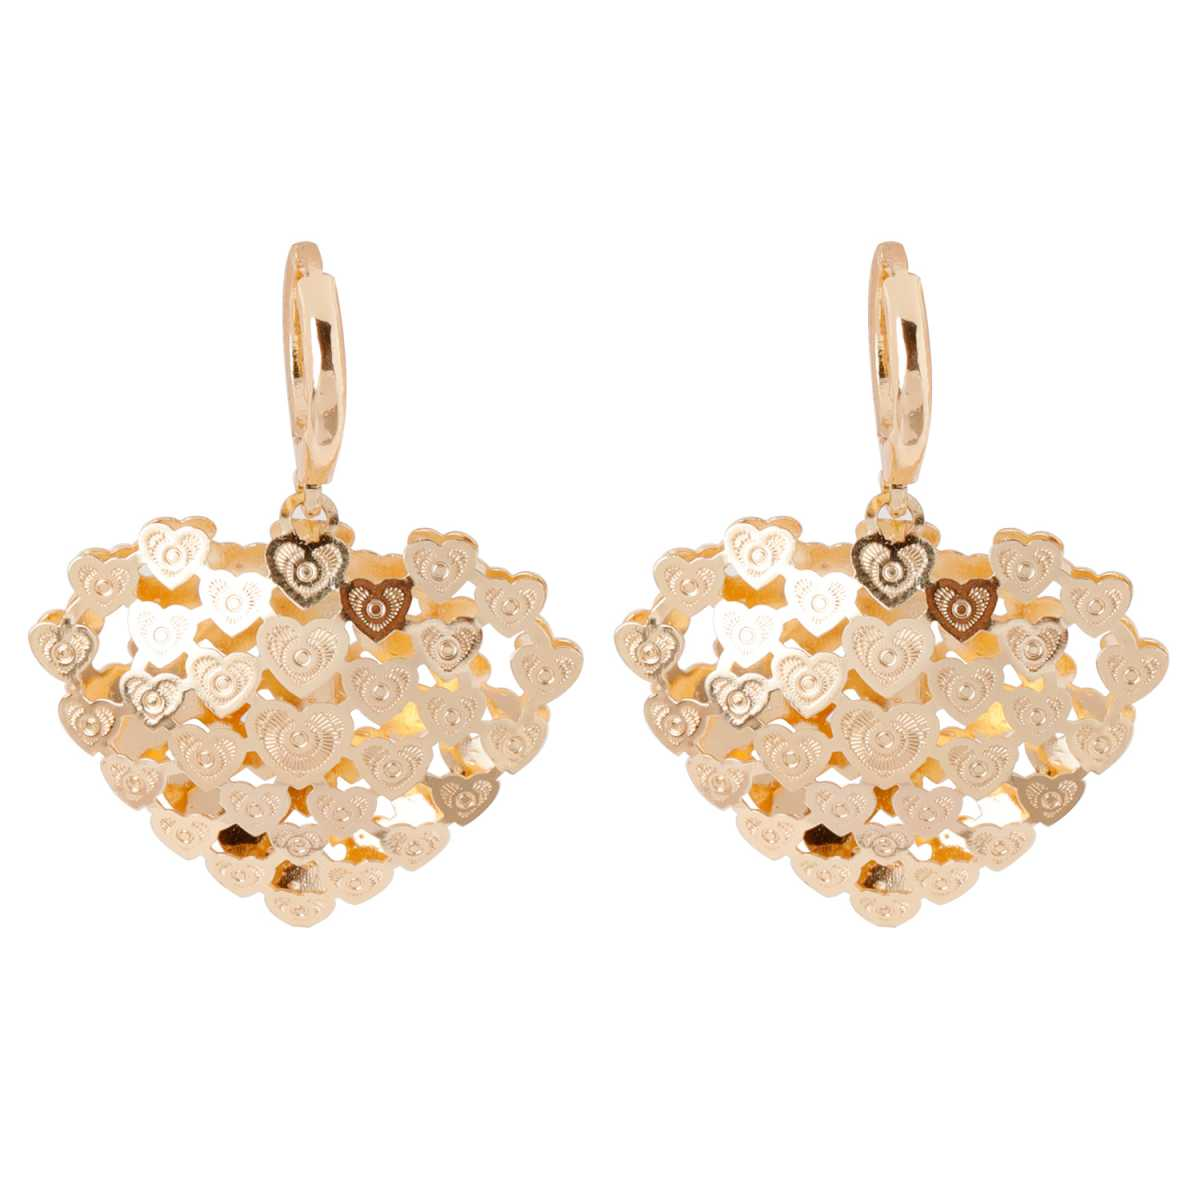 Silver Shine Spunky Golden Heart Clip On Bali Earring for Women